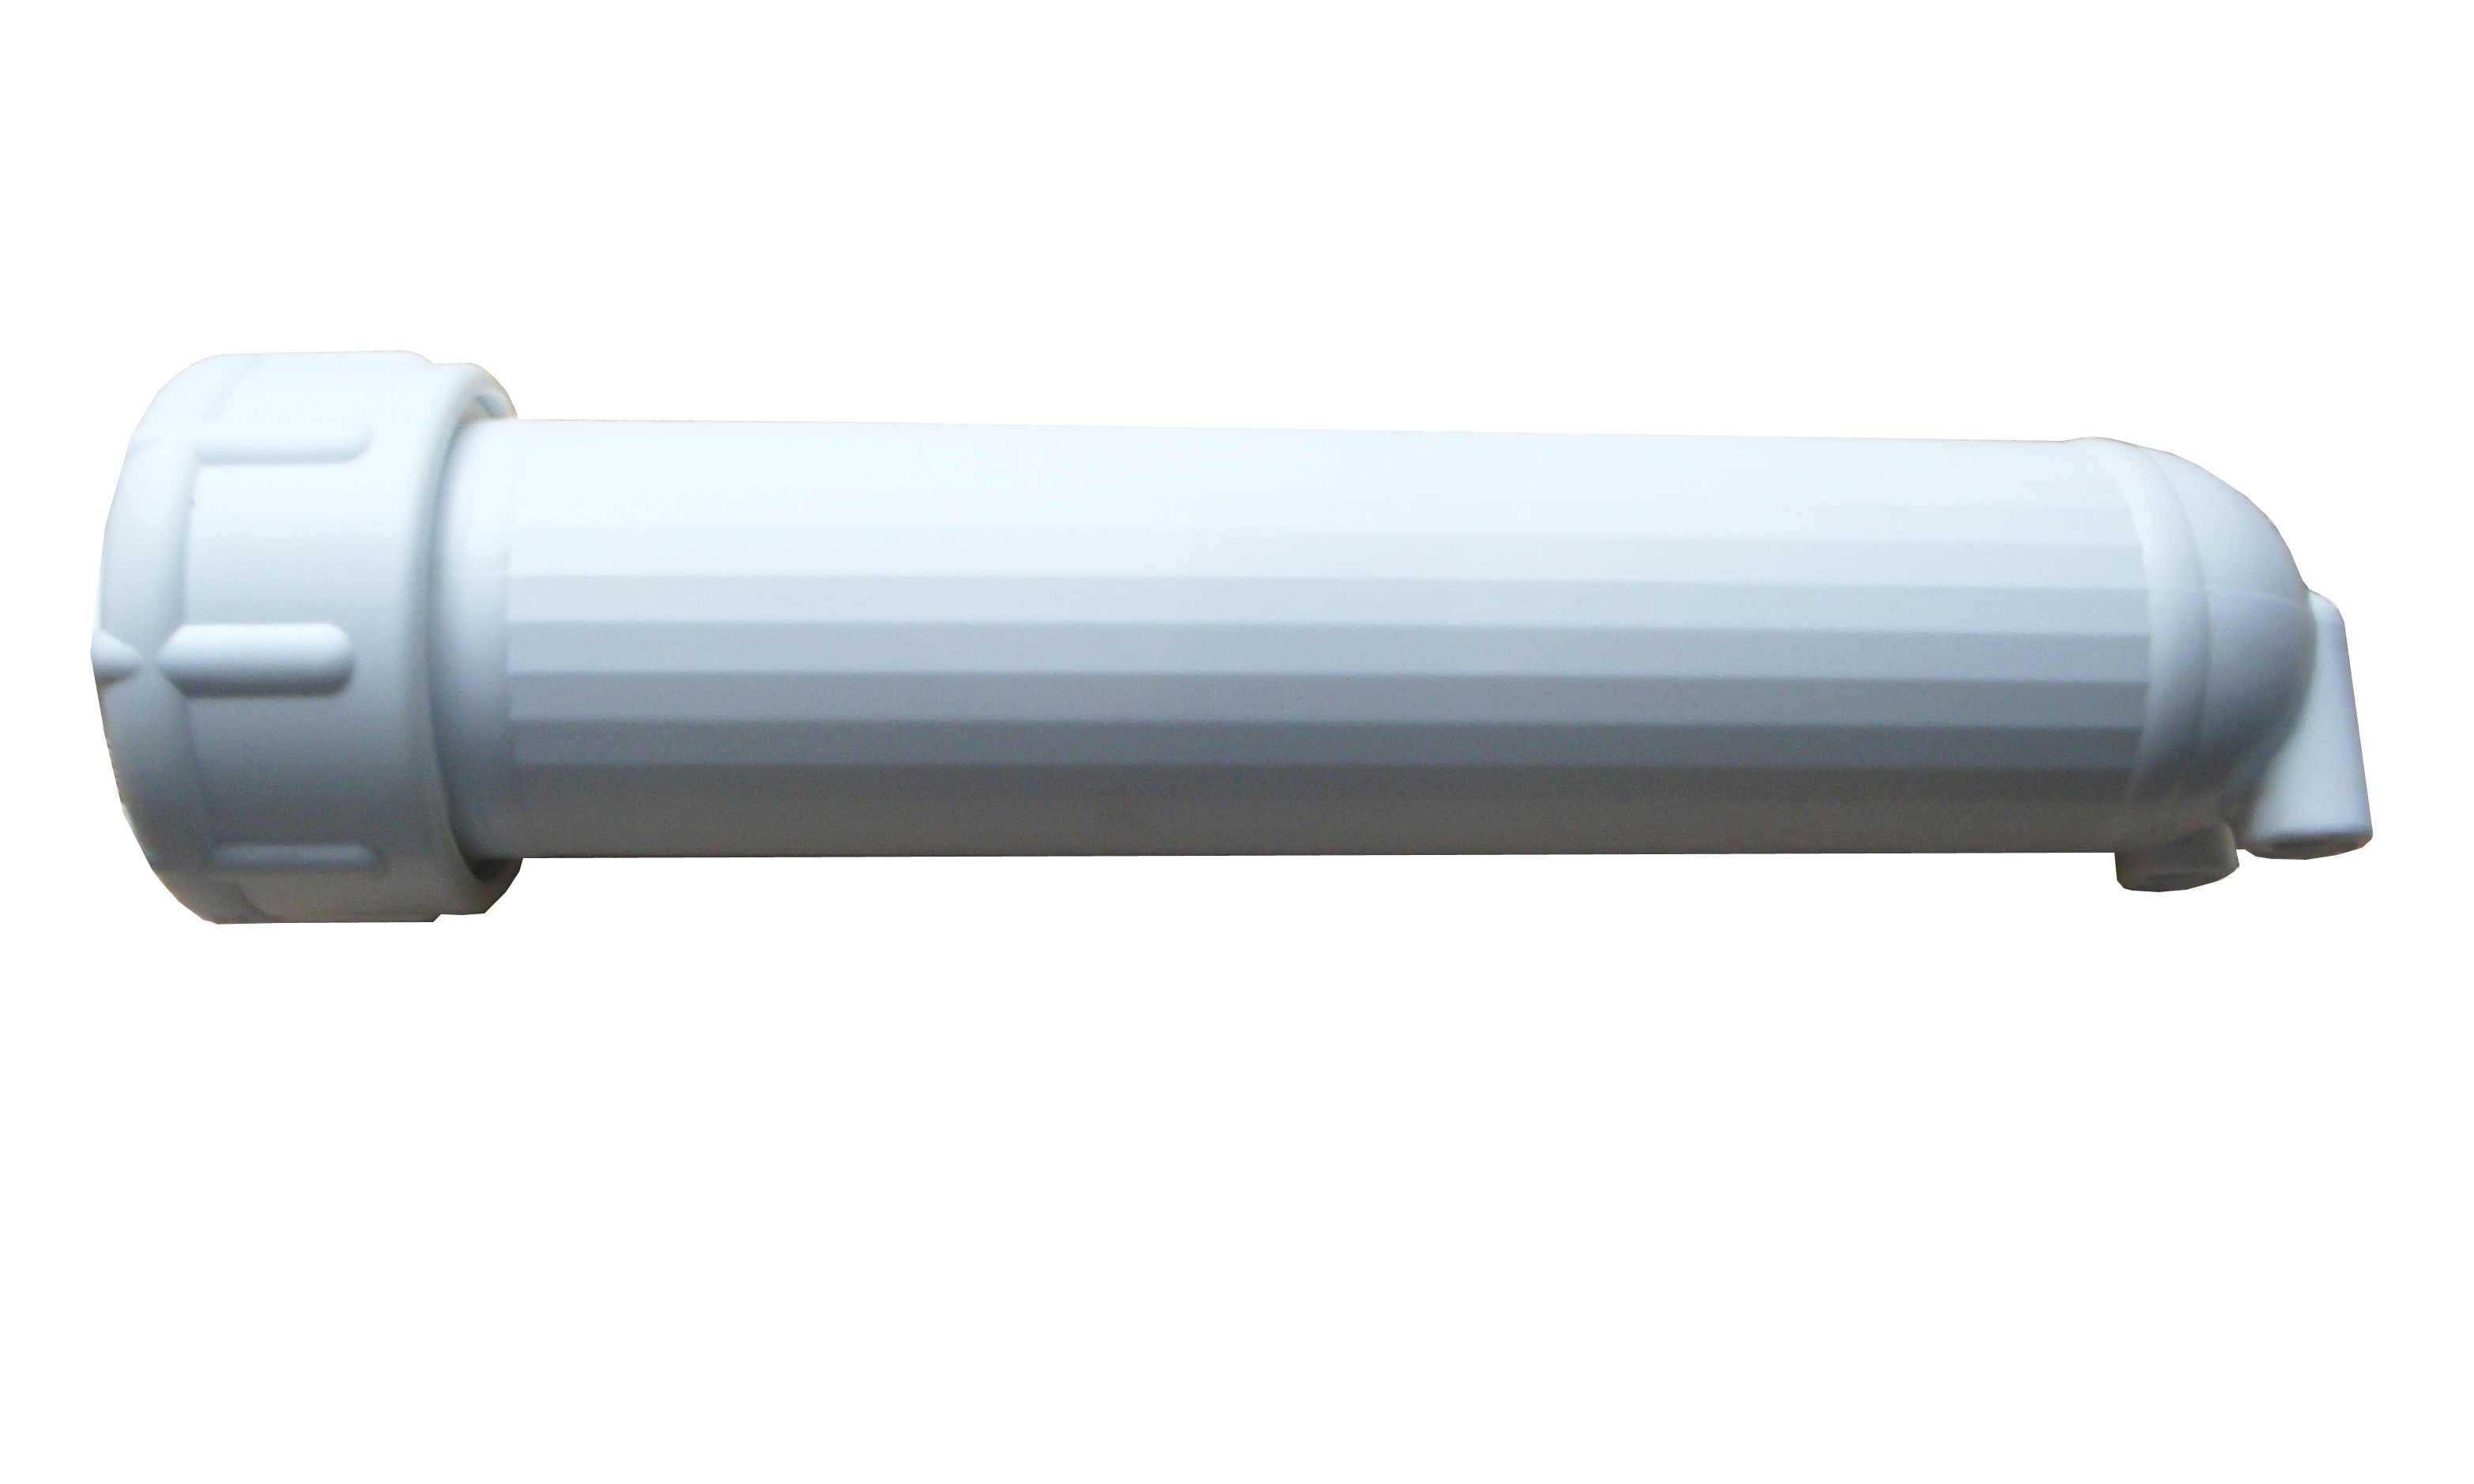 Universal Membrane Housing for Reverse Osmosis Systems